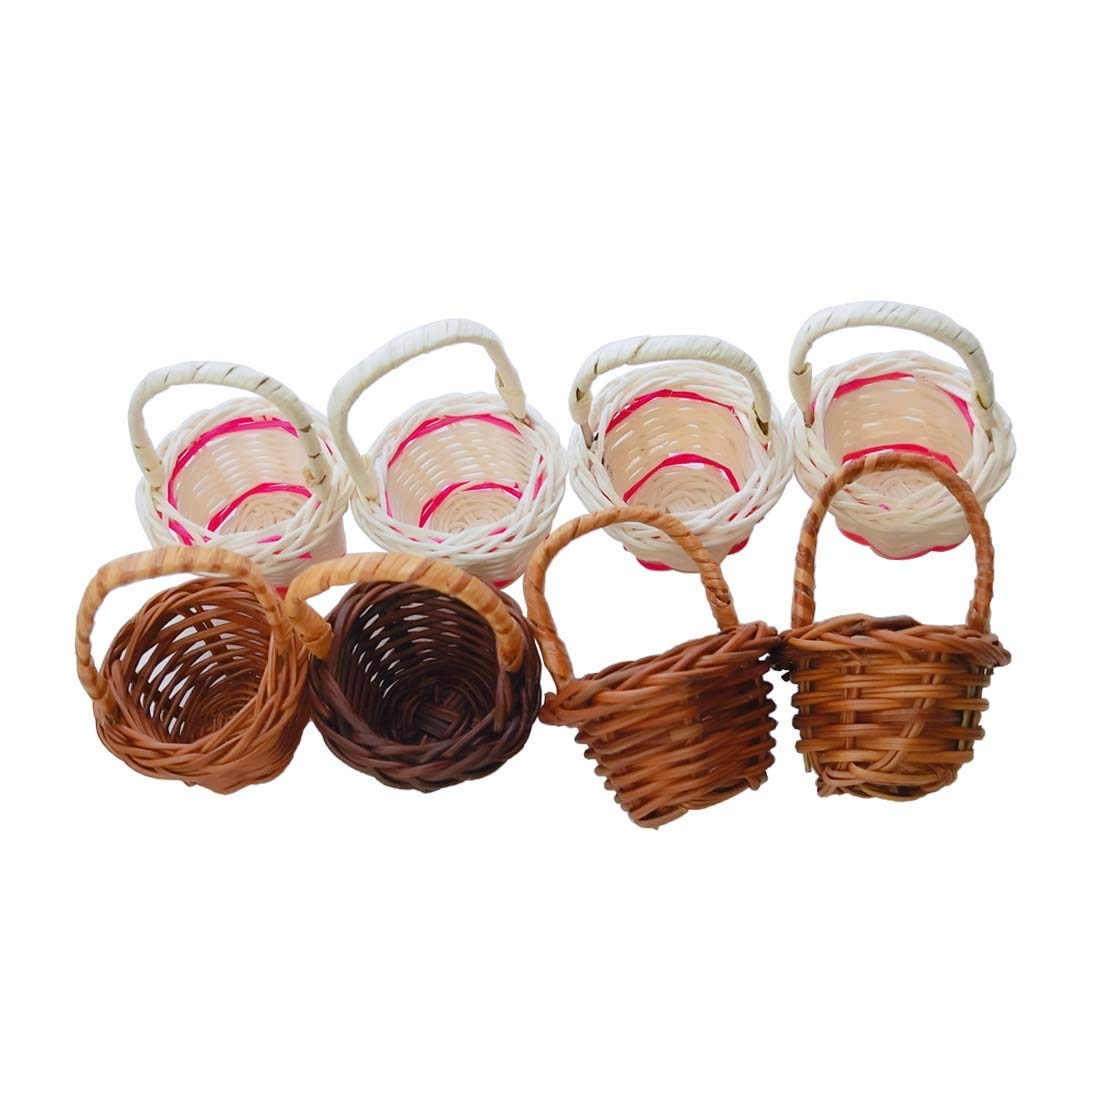 Brown and White Hands Craft Tiny Baskets 8 Pcs of Set Miniature-Tiny Baskets Mini Fern Baskets Miniature Fairy Garden Baskets Dollhouse Supply Decor Wicker Small Baskets Small Country Baskets